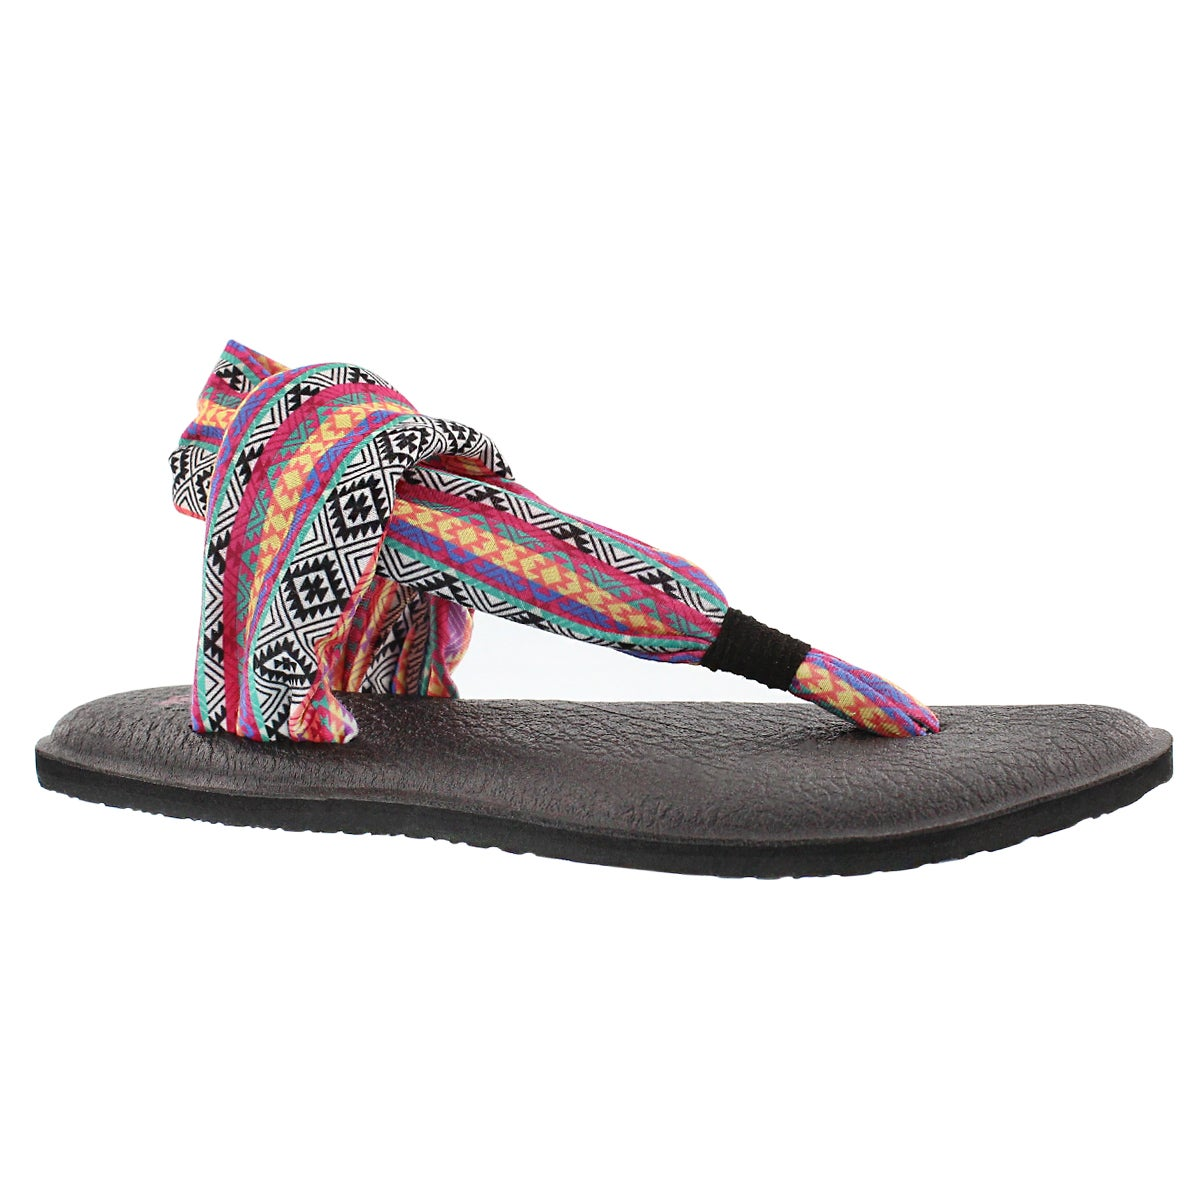 Women's YOGA SLING magenta/multi print thongs